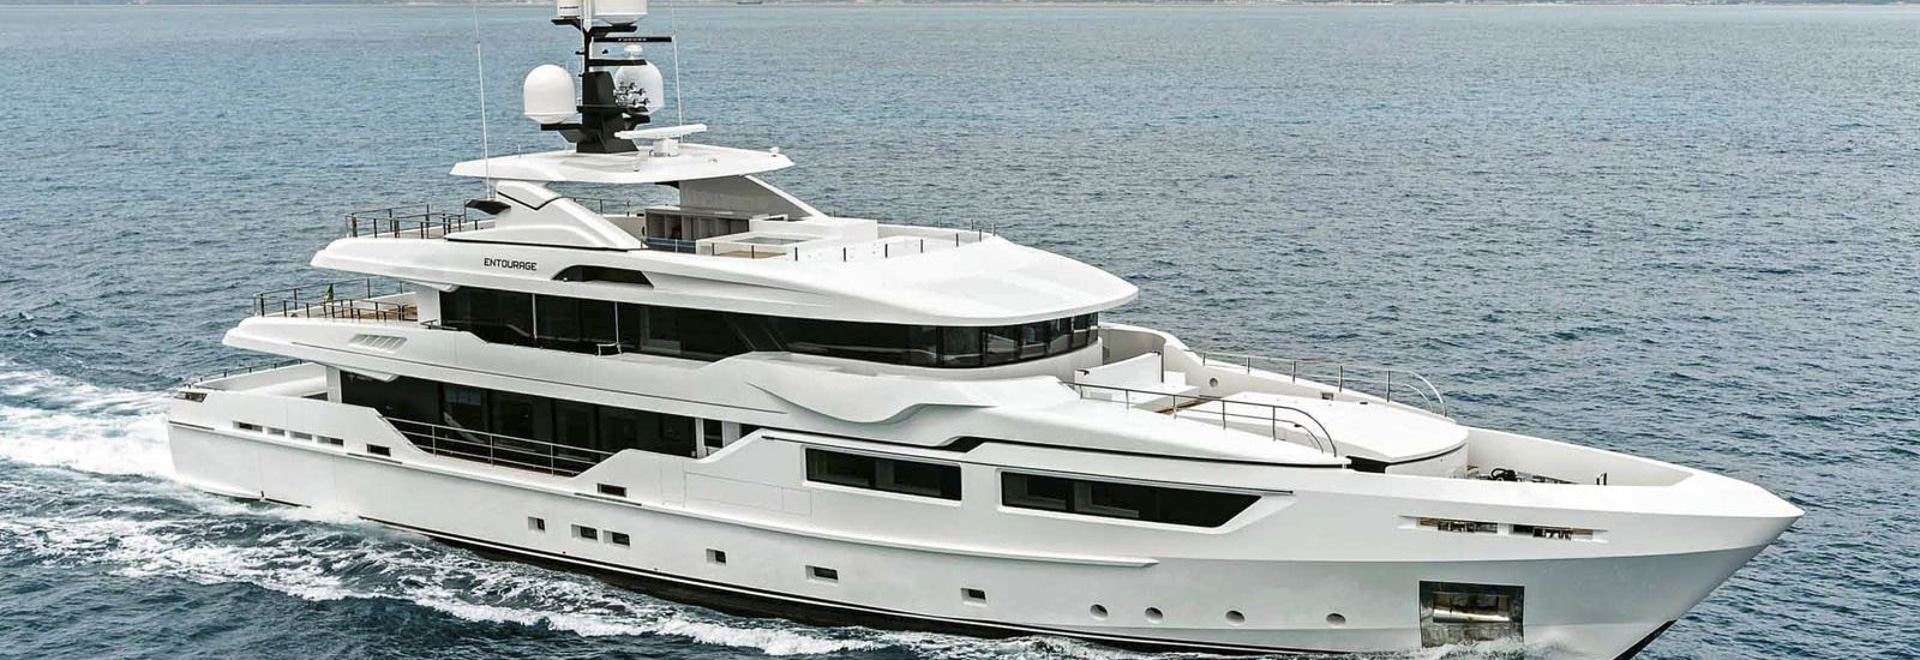 NEW: mega-yacht by Admiral yachts